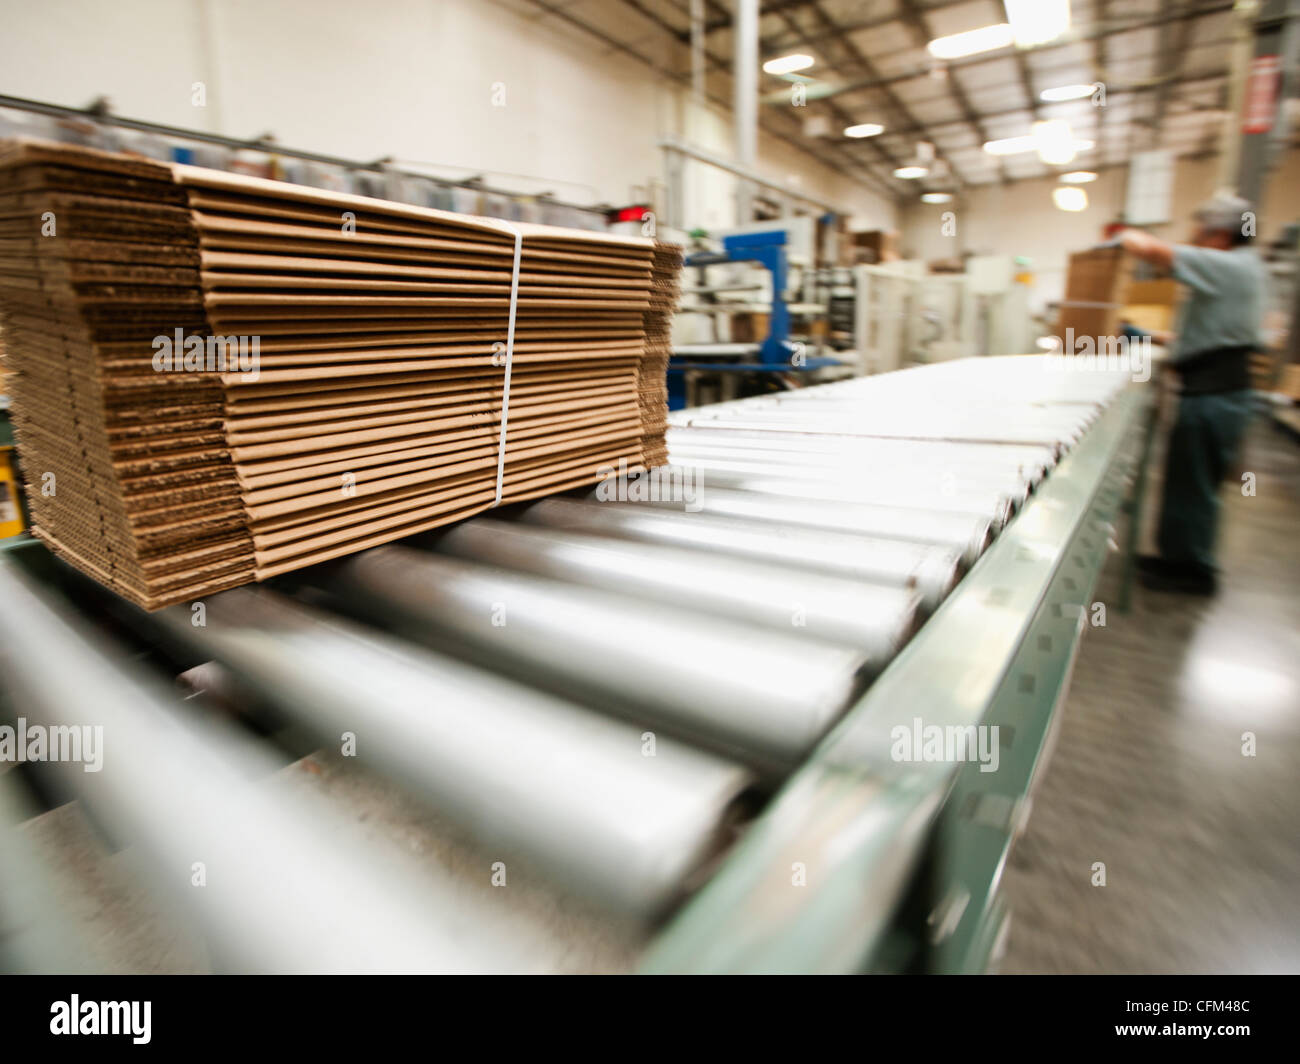 USA, California, Santa Ana, Bundle on conveyor belt - Stock Image